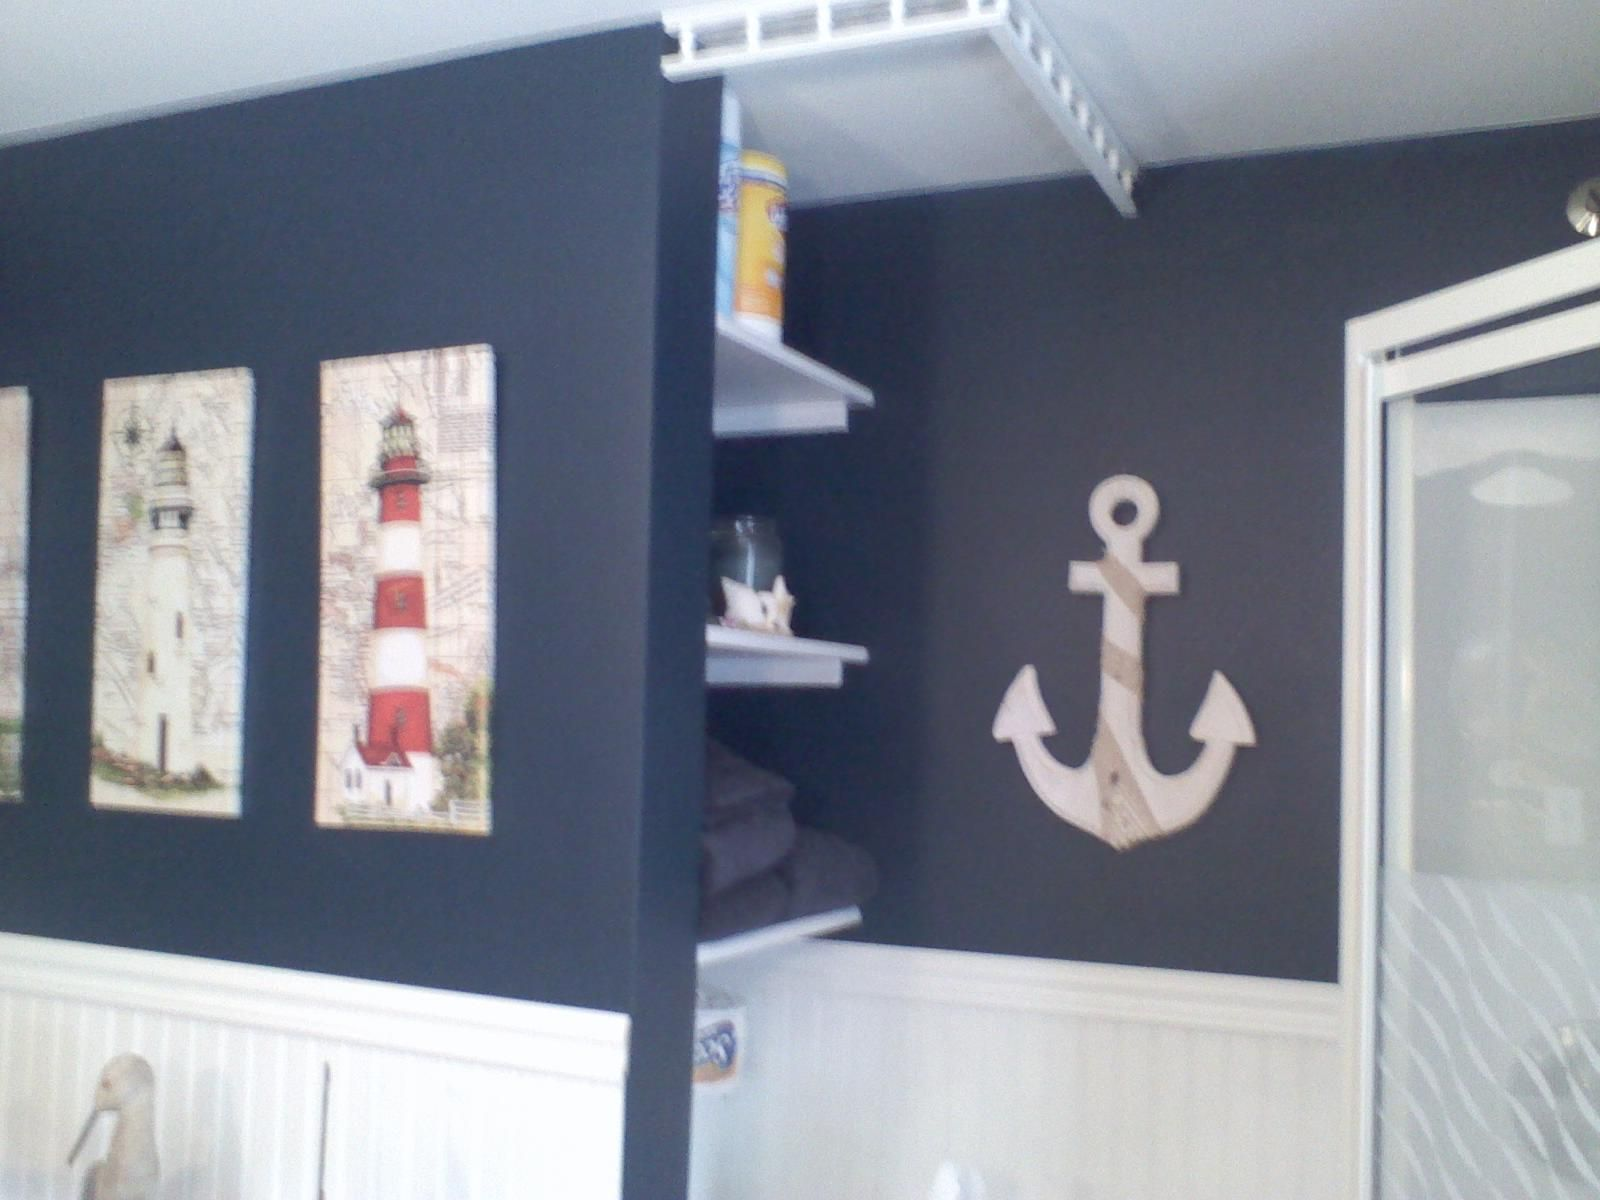 Nautical themed bathroom -  Brooke Baird Stacey Check Out The Anchor On The Wall